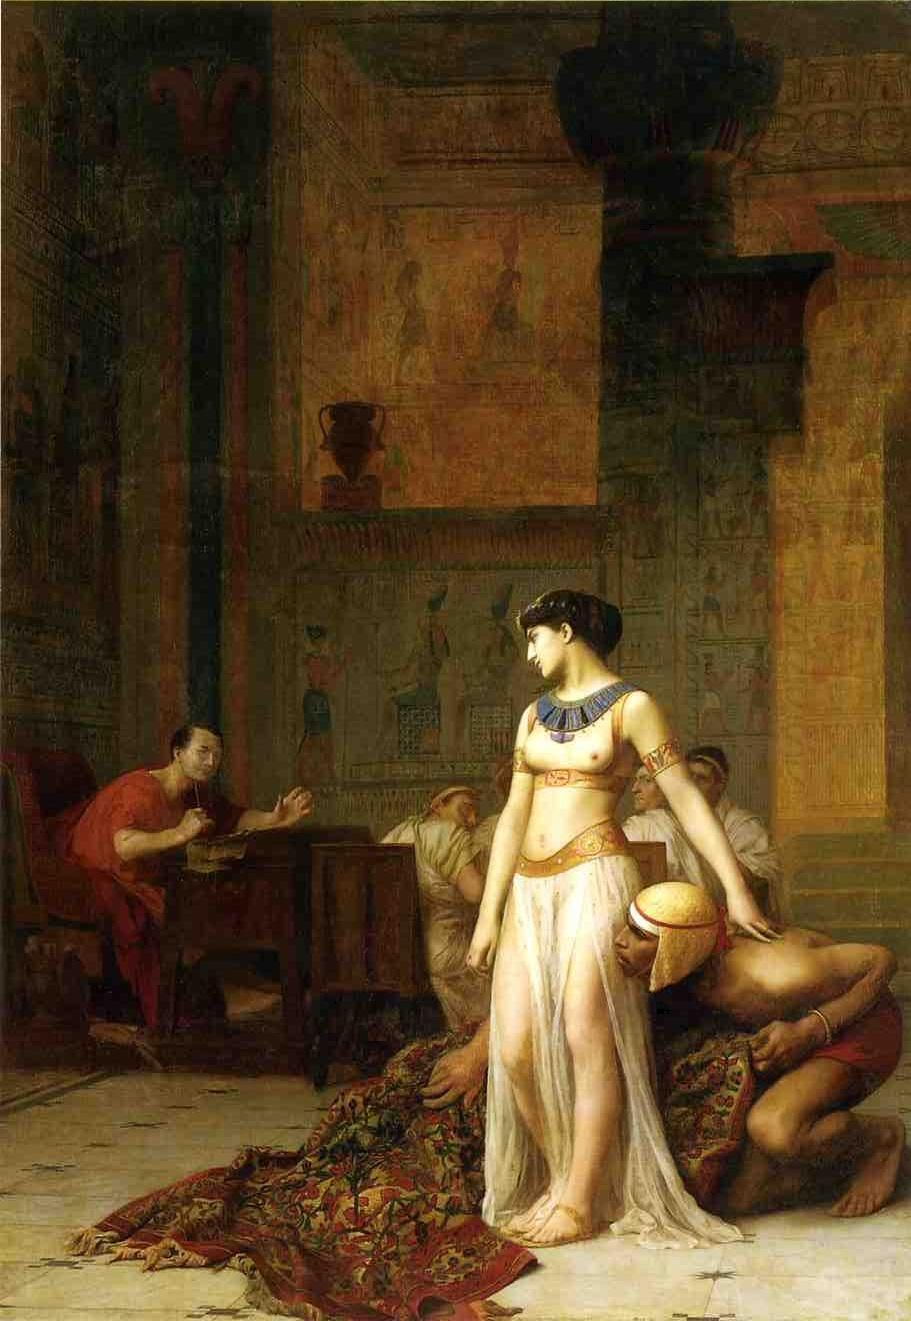 Jean-Leon-Gerome, Cleopatra and Caesar, 1866. Via Wikimedia Commons.